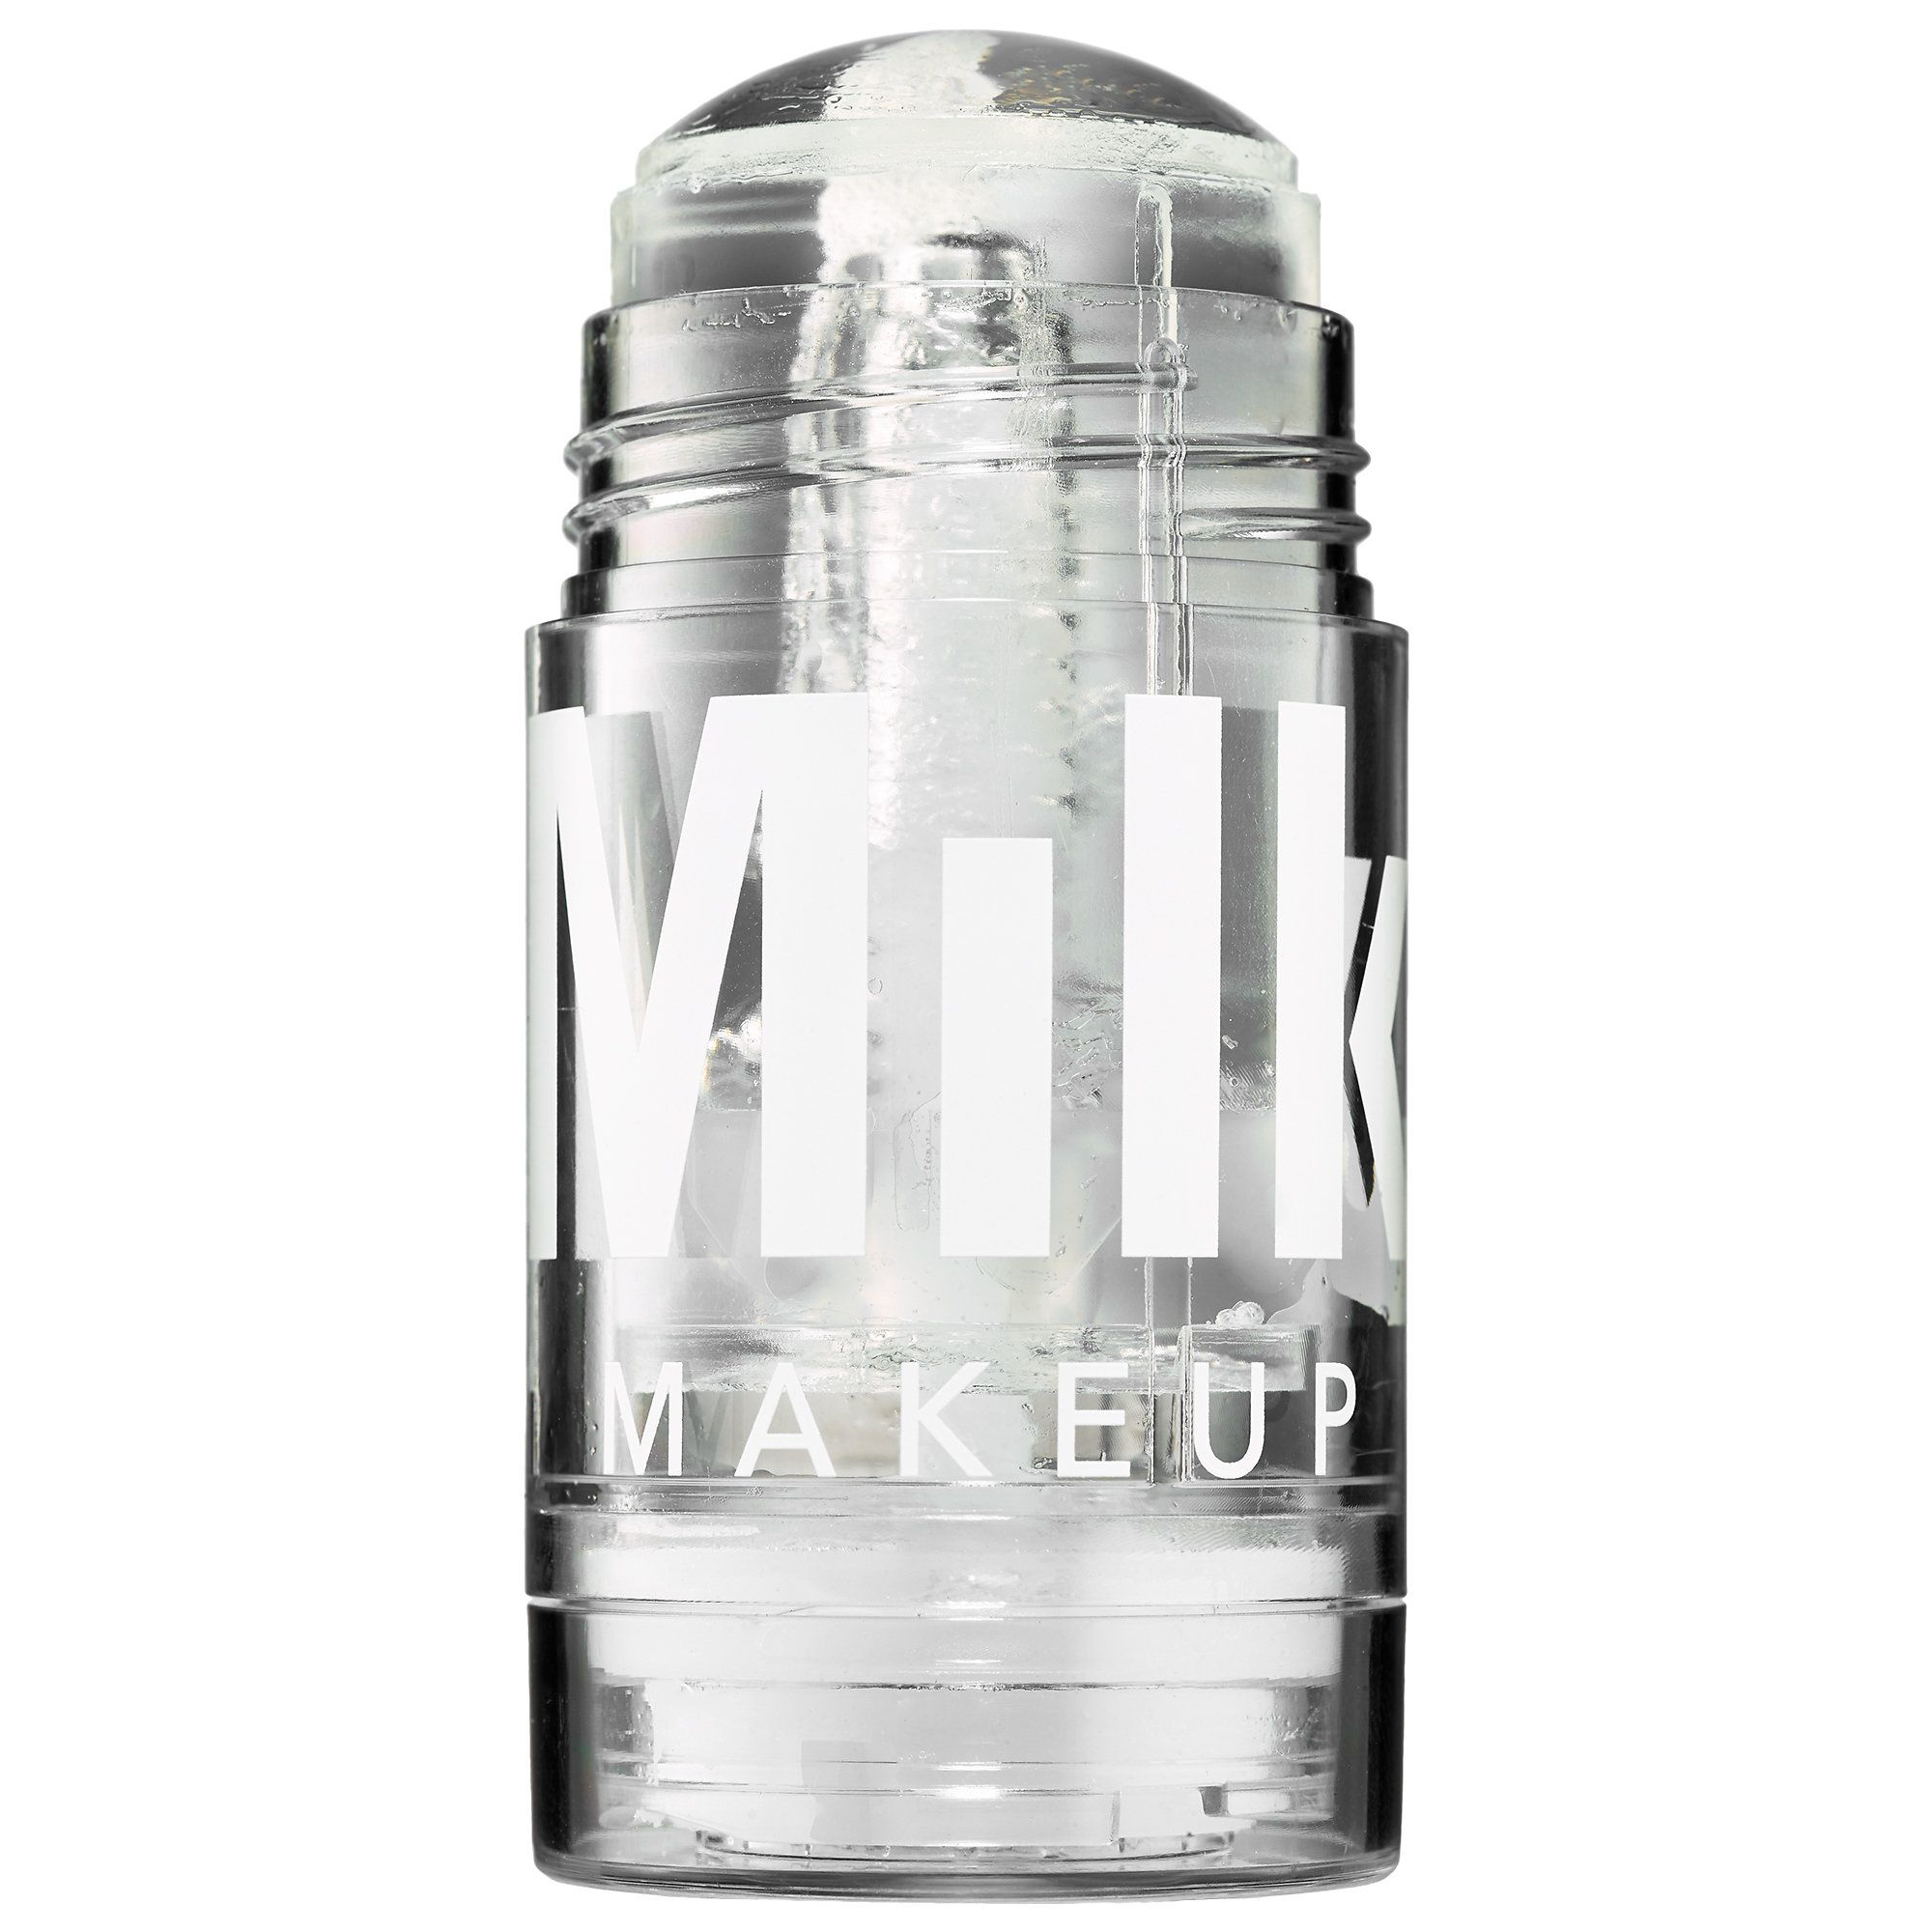 Shop Milk Makeup's Hydrating Oil at Sephora. This